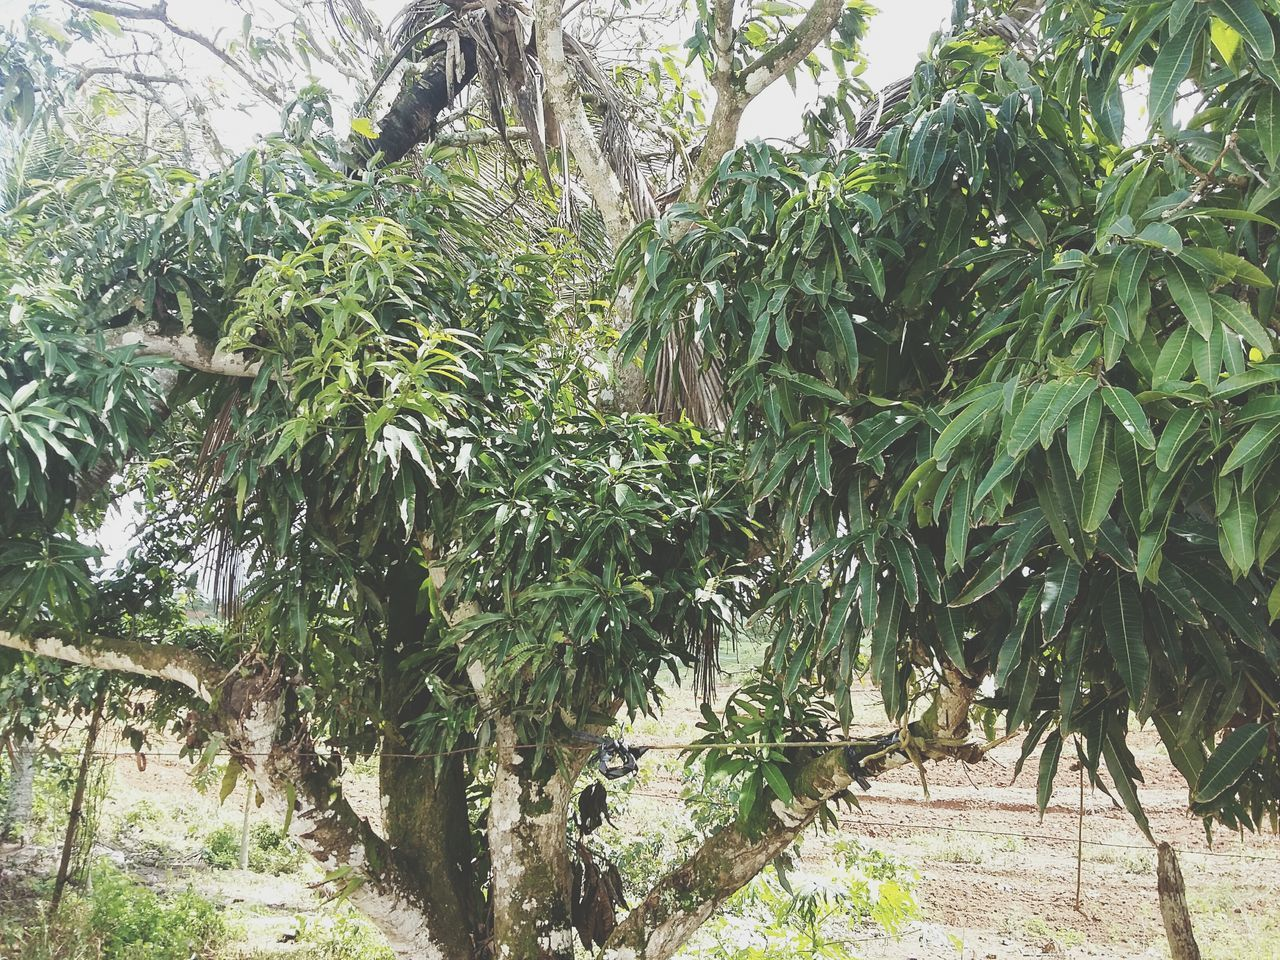 tree, nature, growth, plant, no people, leaf, day, outdoors